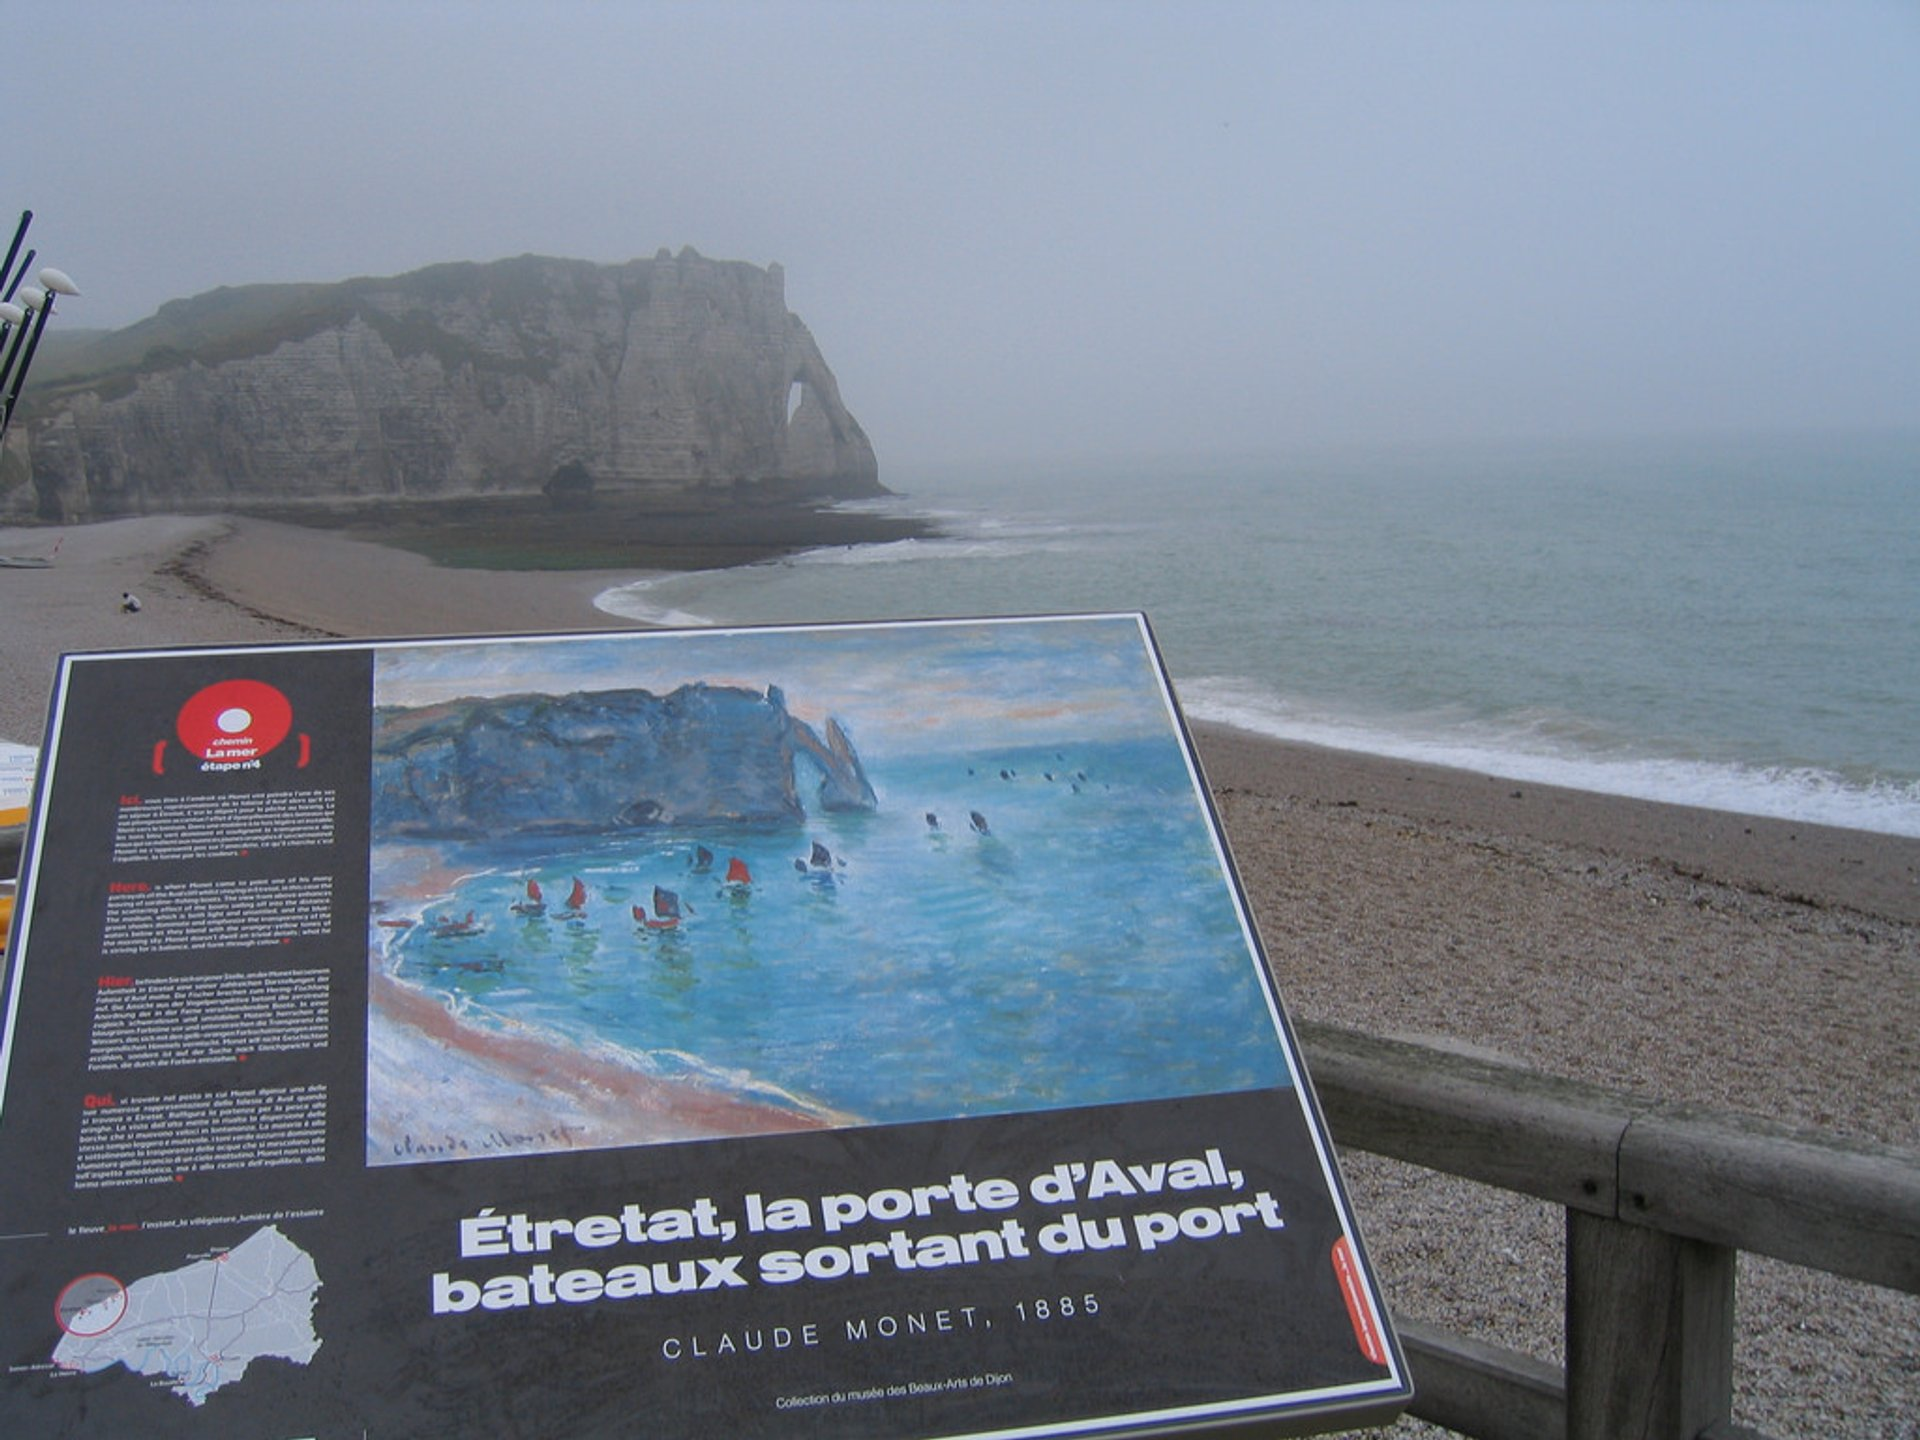 Best time for Étretat 2020